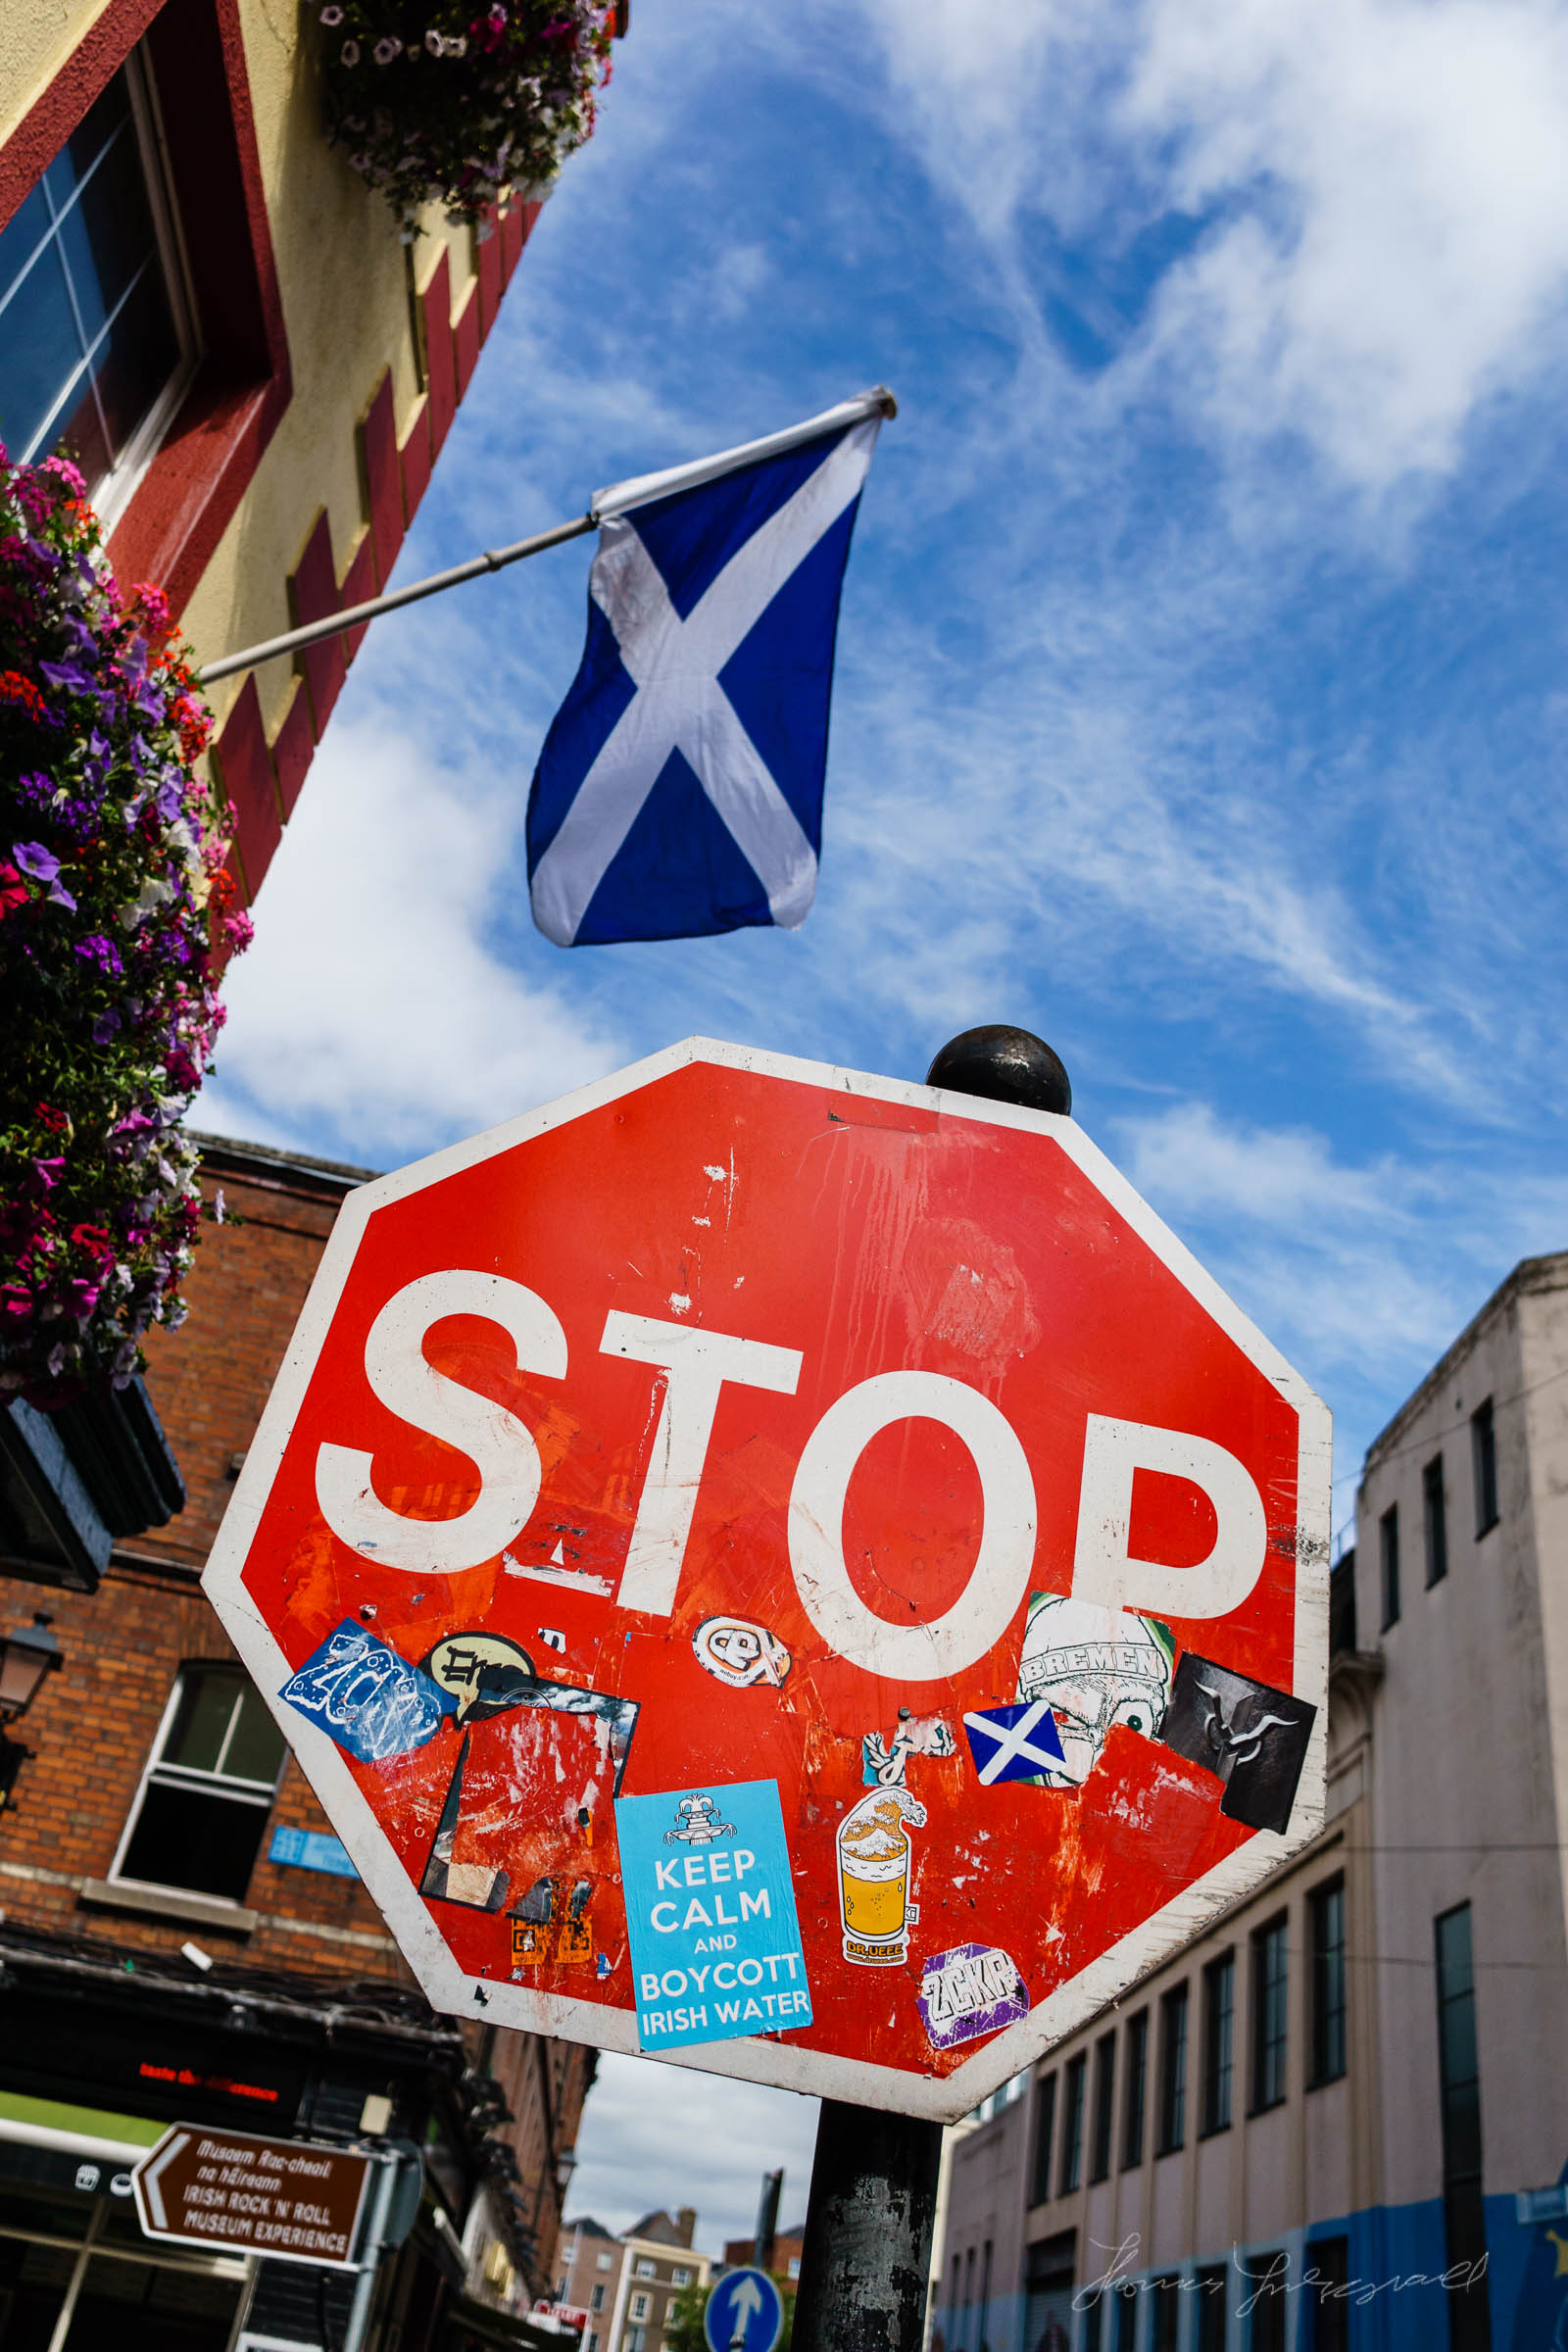 Street Sign in front of the Scottish Flag